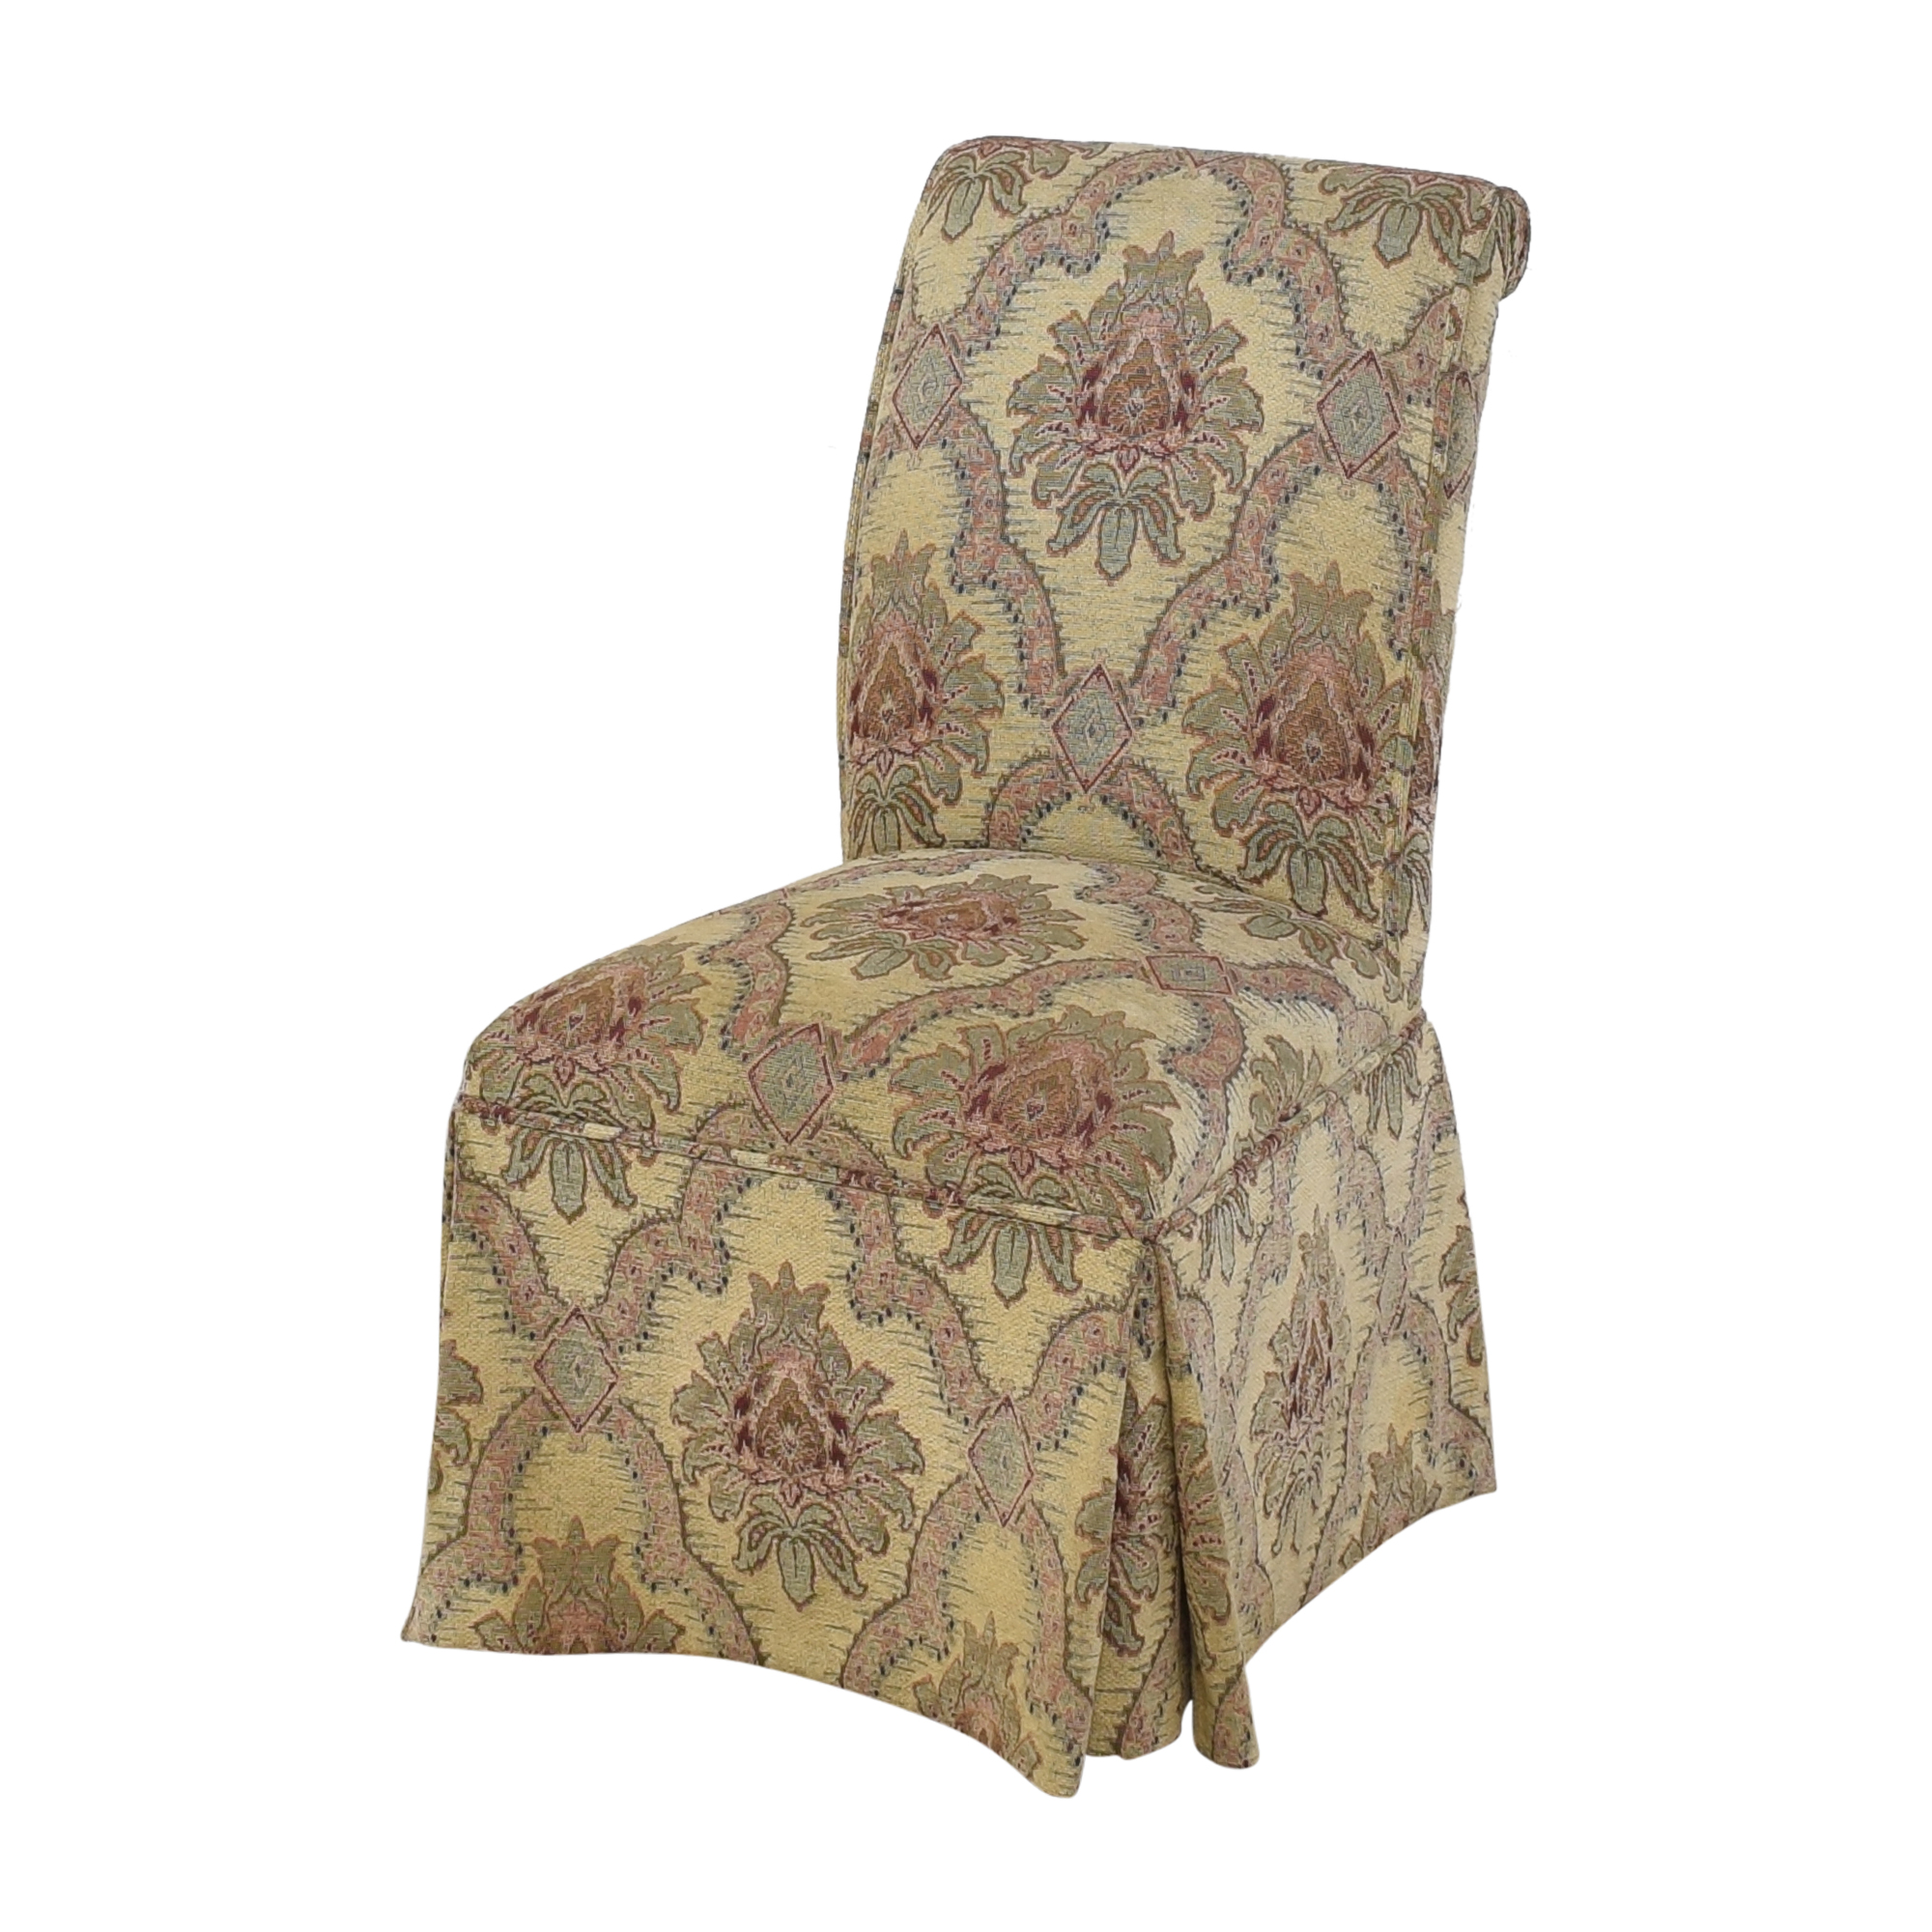 Designmaster Furniture Designmaster Furniture Custom Dining Chairs for sale